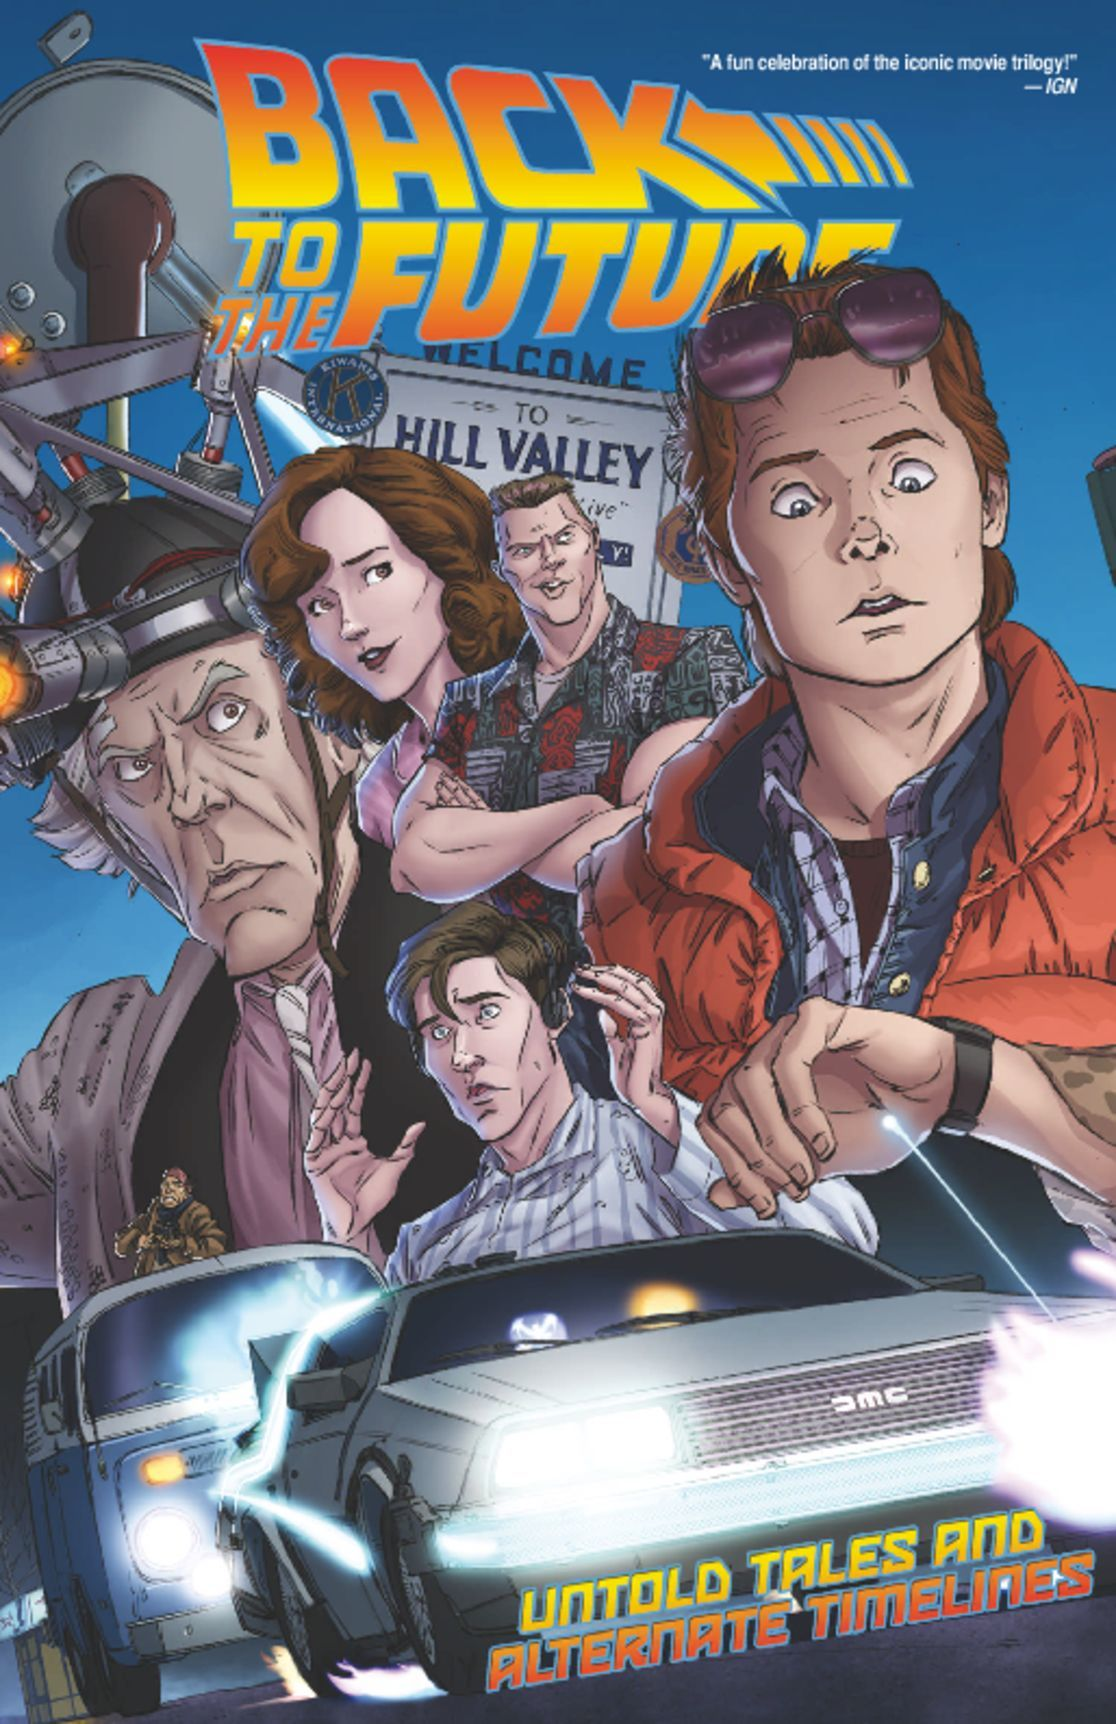 Back to the Future Vol 1 Untold Tales and Alternate Timelines Digital